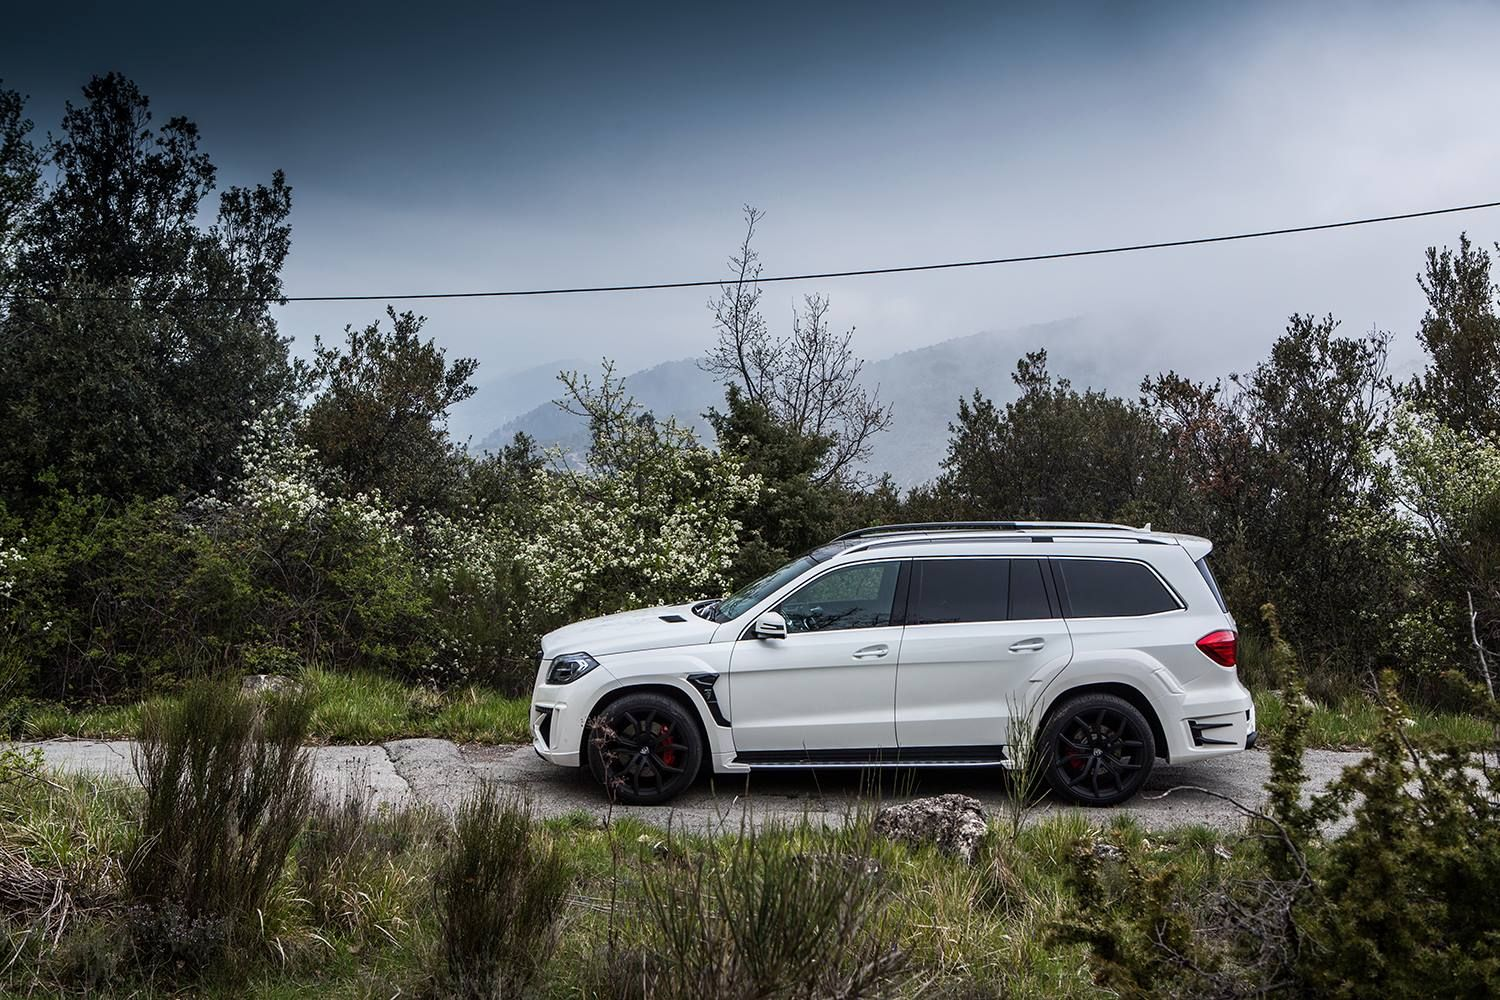 There's a cool new tuning kit for the Mercedes-Benz GL - Black Crystal from Larte Design